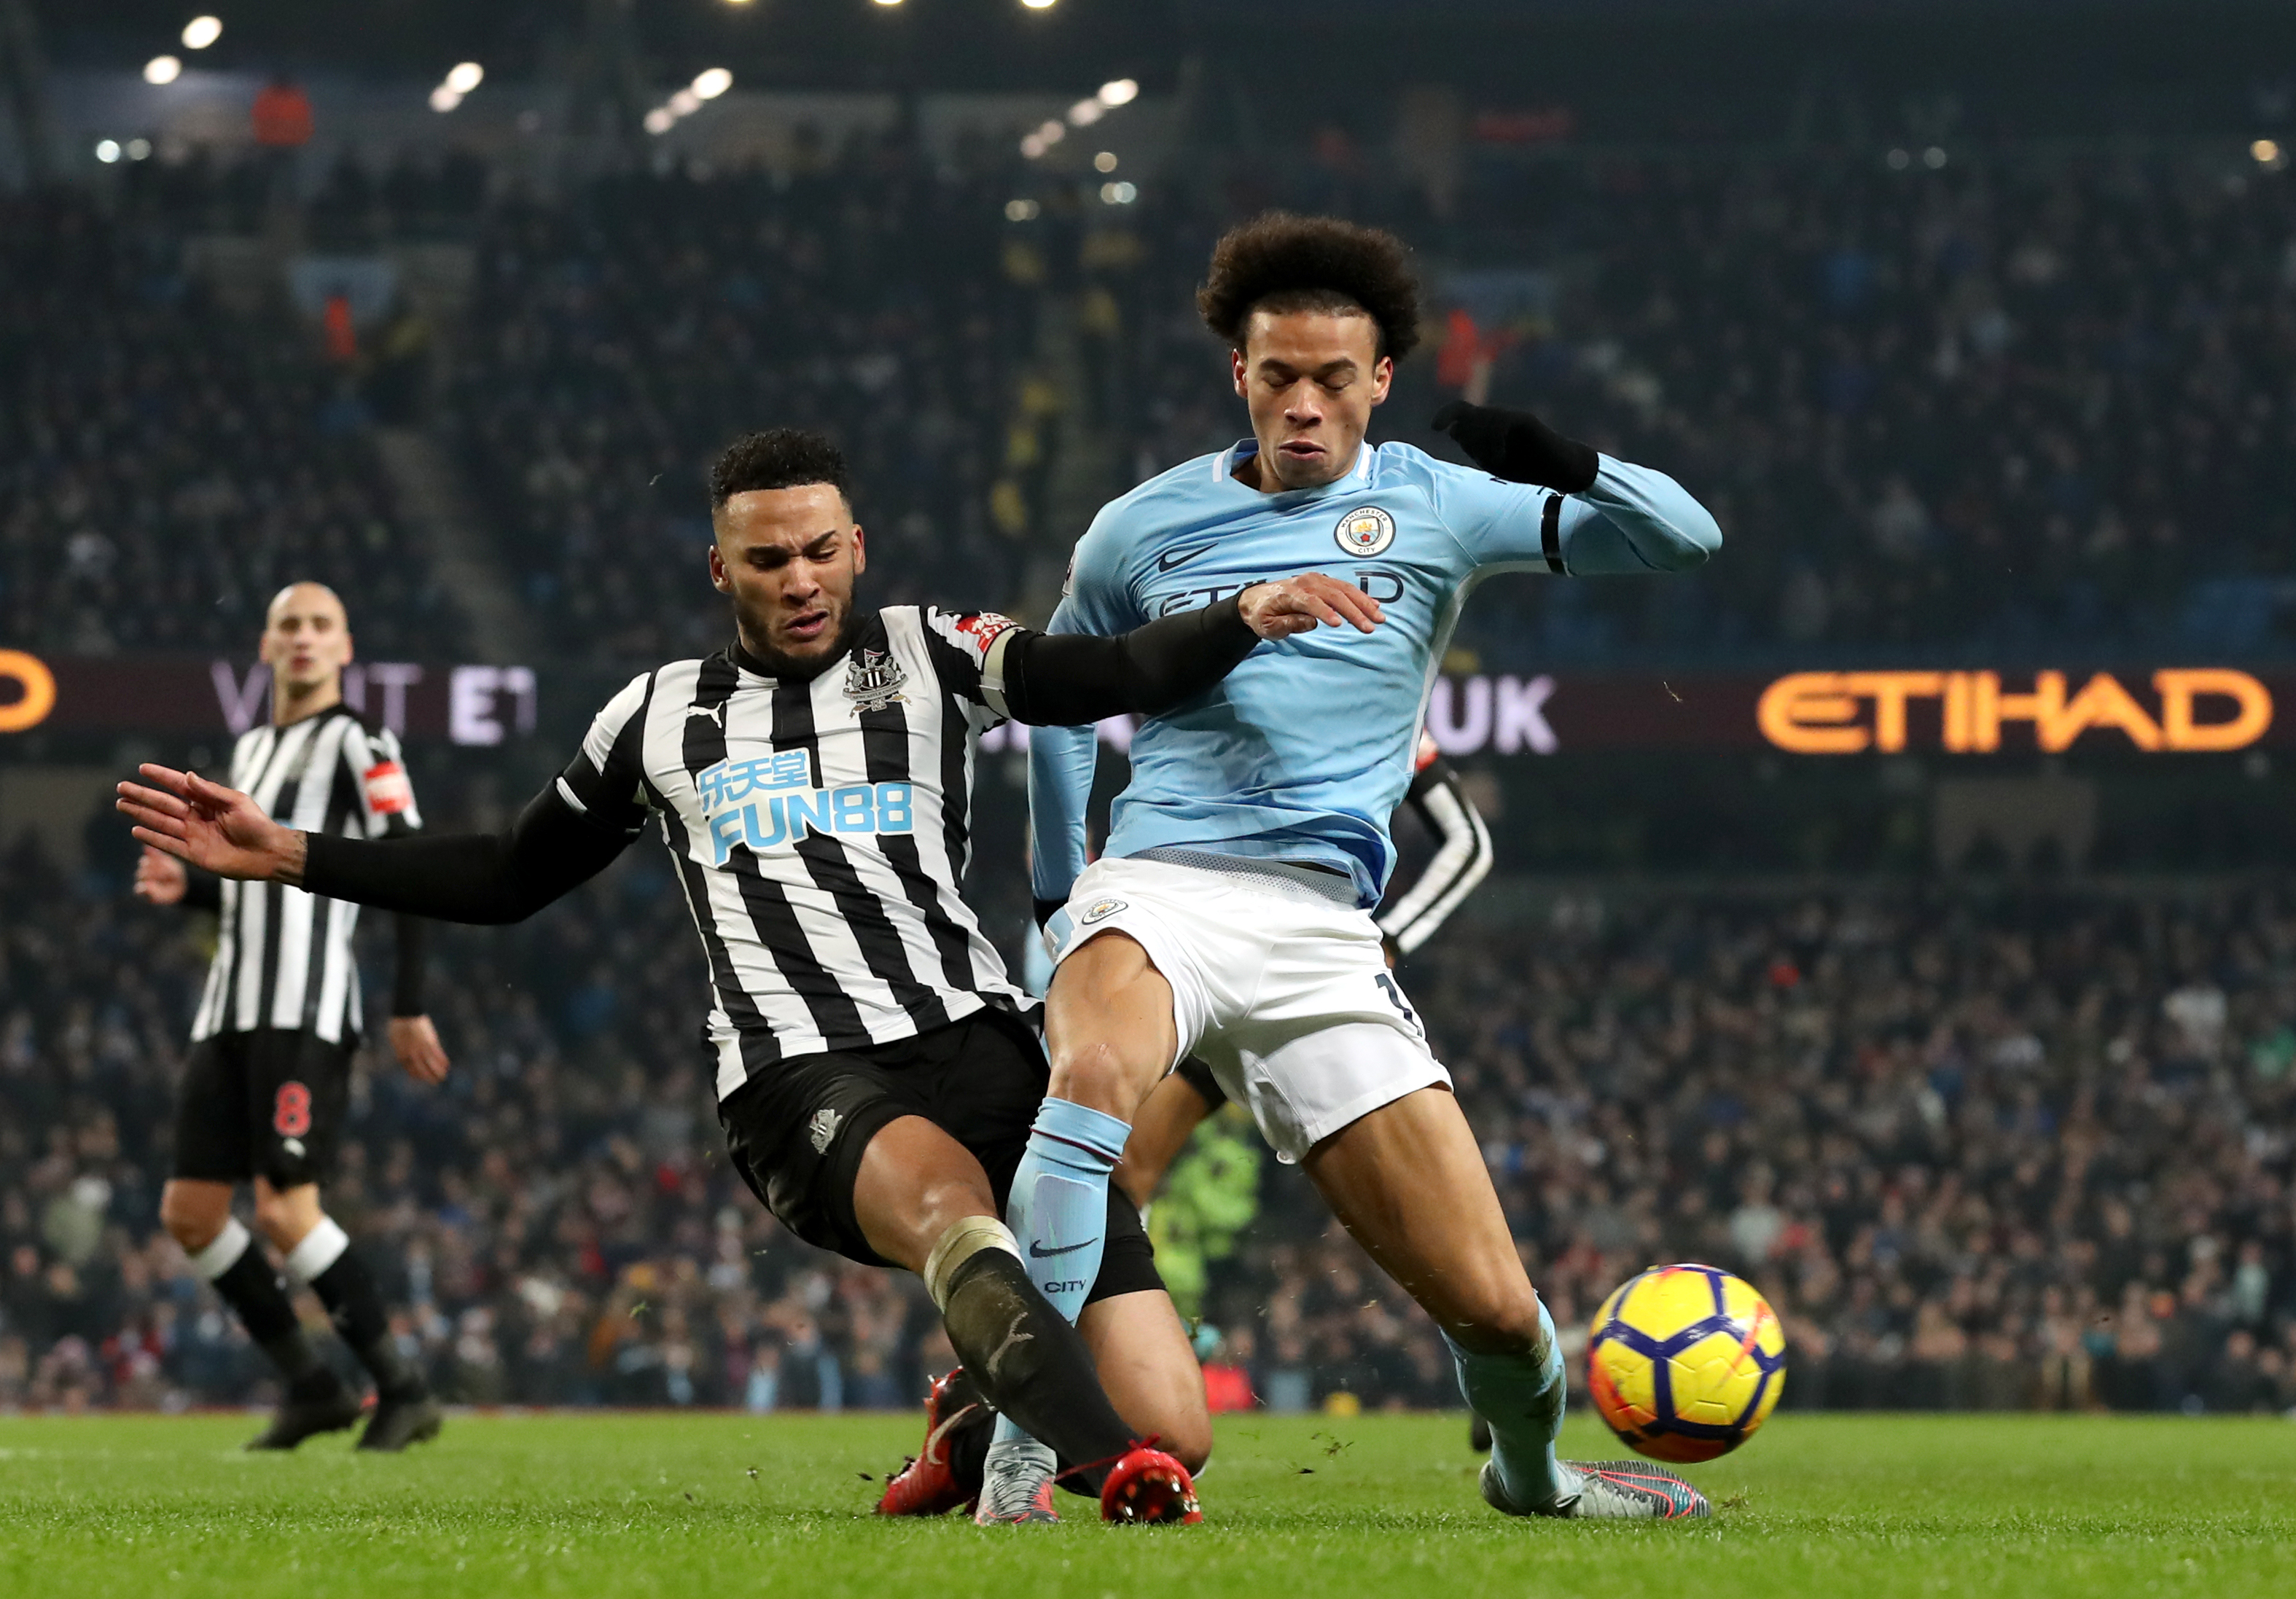 Lascelles in action for Newcastle. Image PA